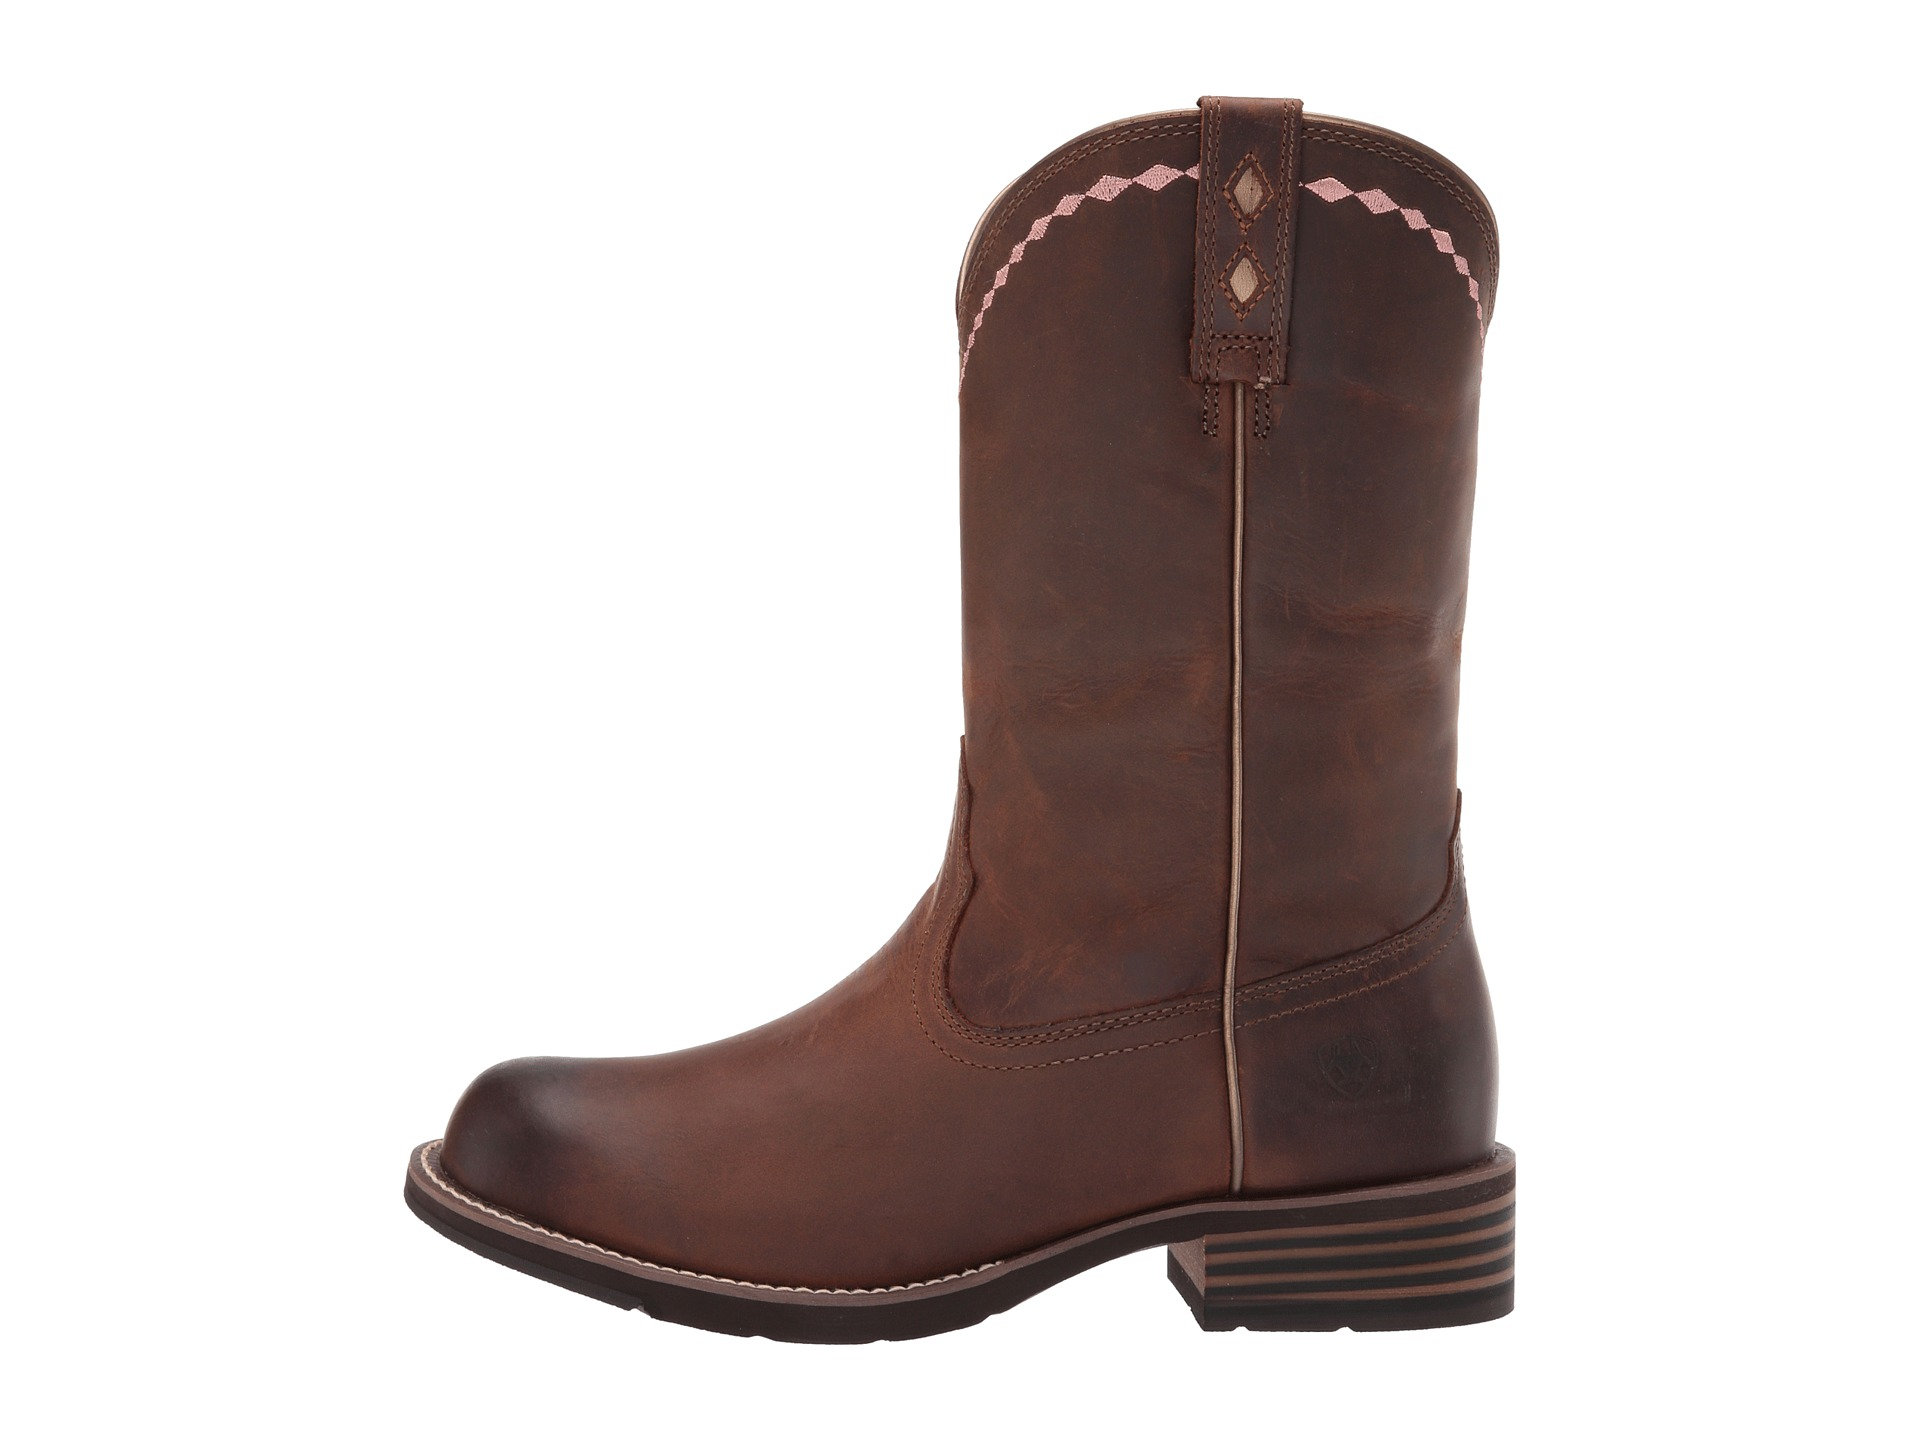 Ariat Unbridled Roper - Zappos.com Free Shipping BOTH Ways